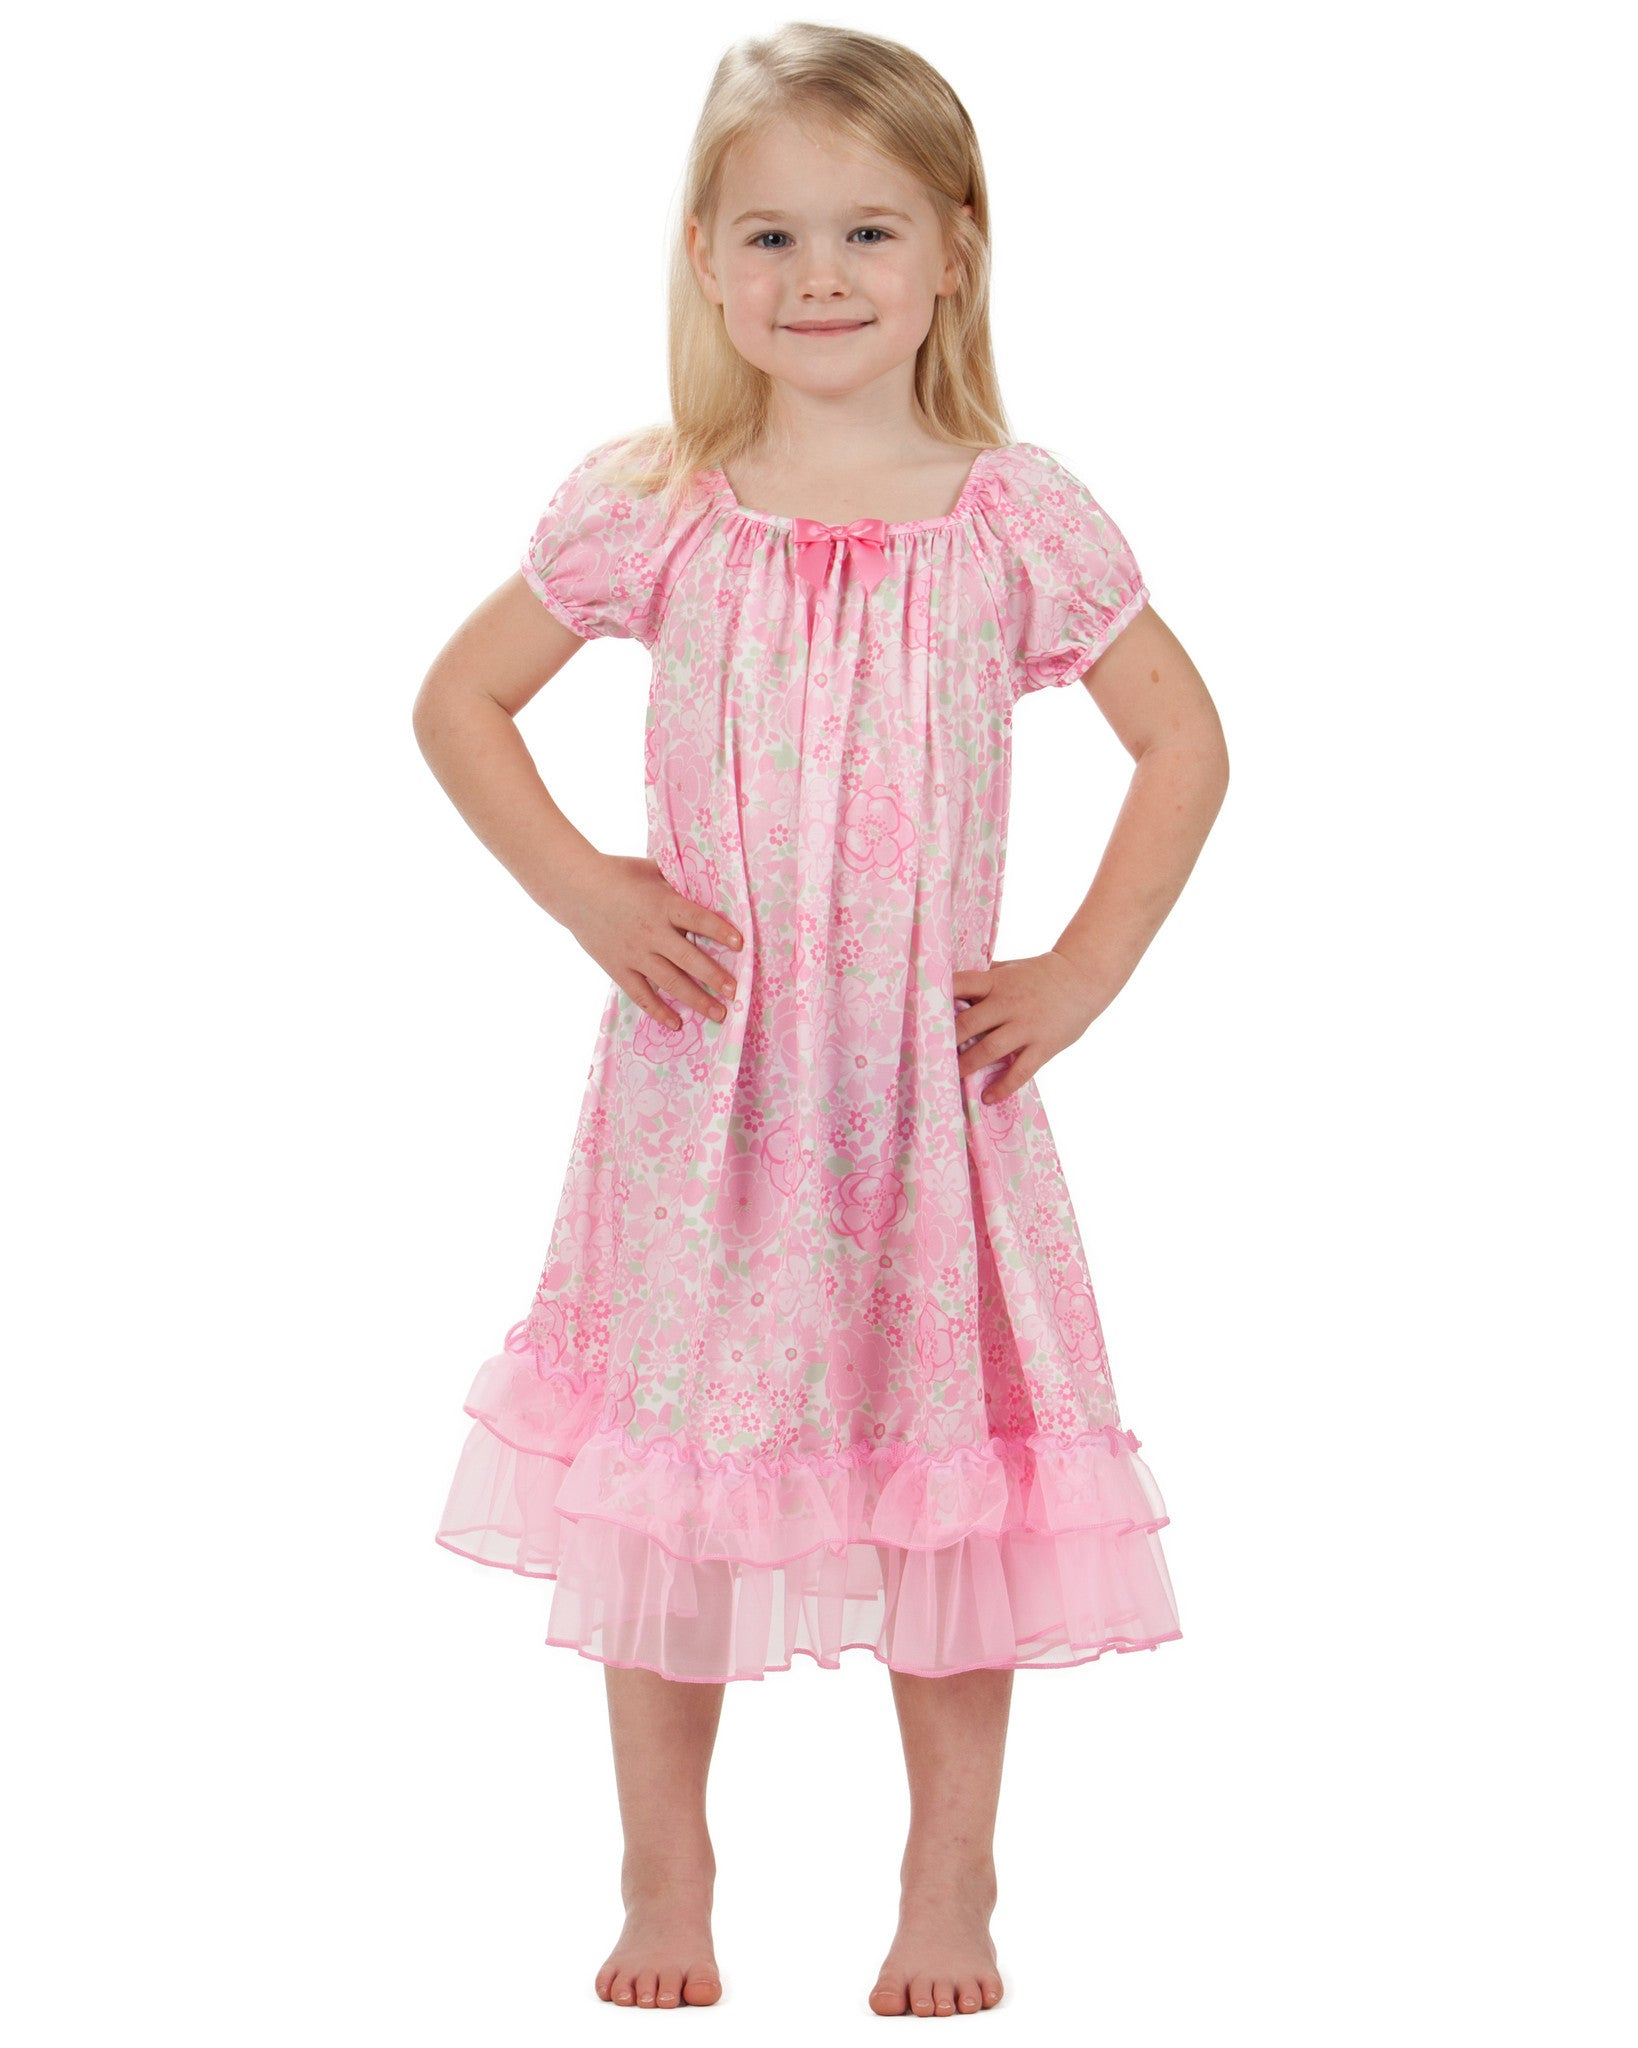 Laura Dare Blossoms Puff Sleeve Nightgown (12m - 14)